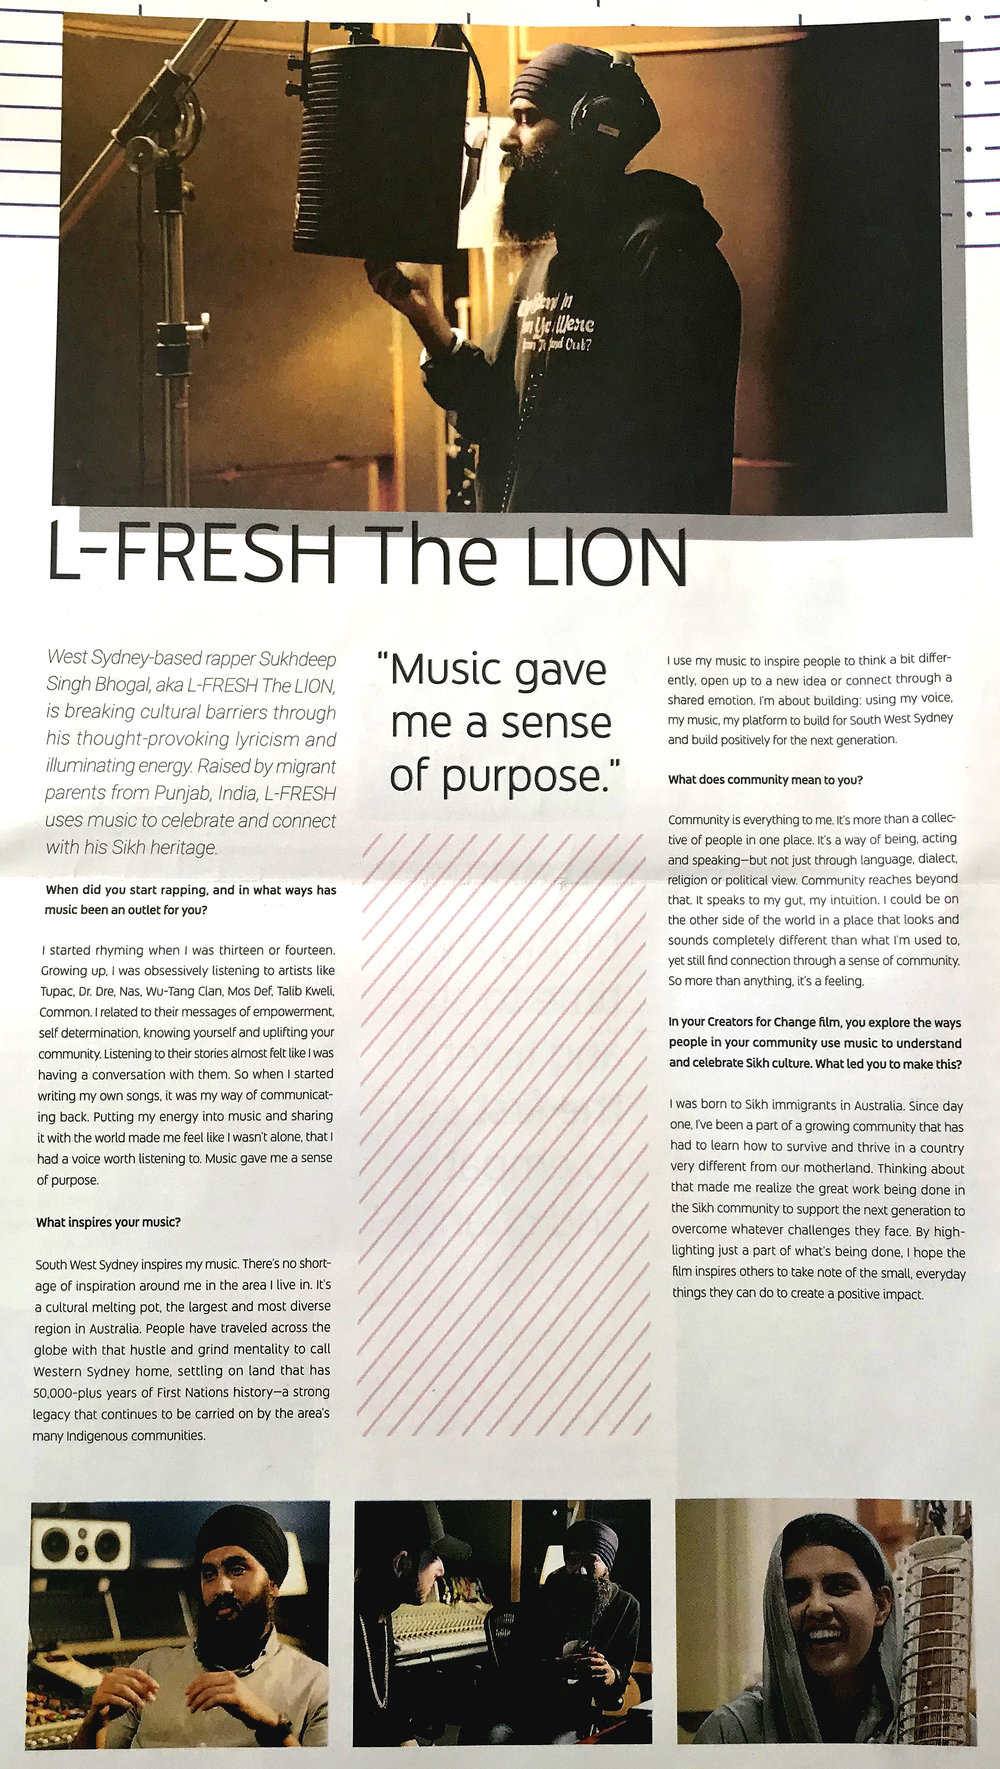 L-FRESH The LION feature in NY Times (2018) as a YouTube Creators for Change Ambassador